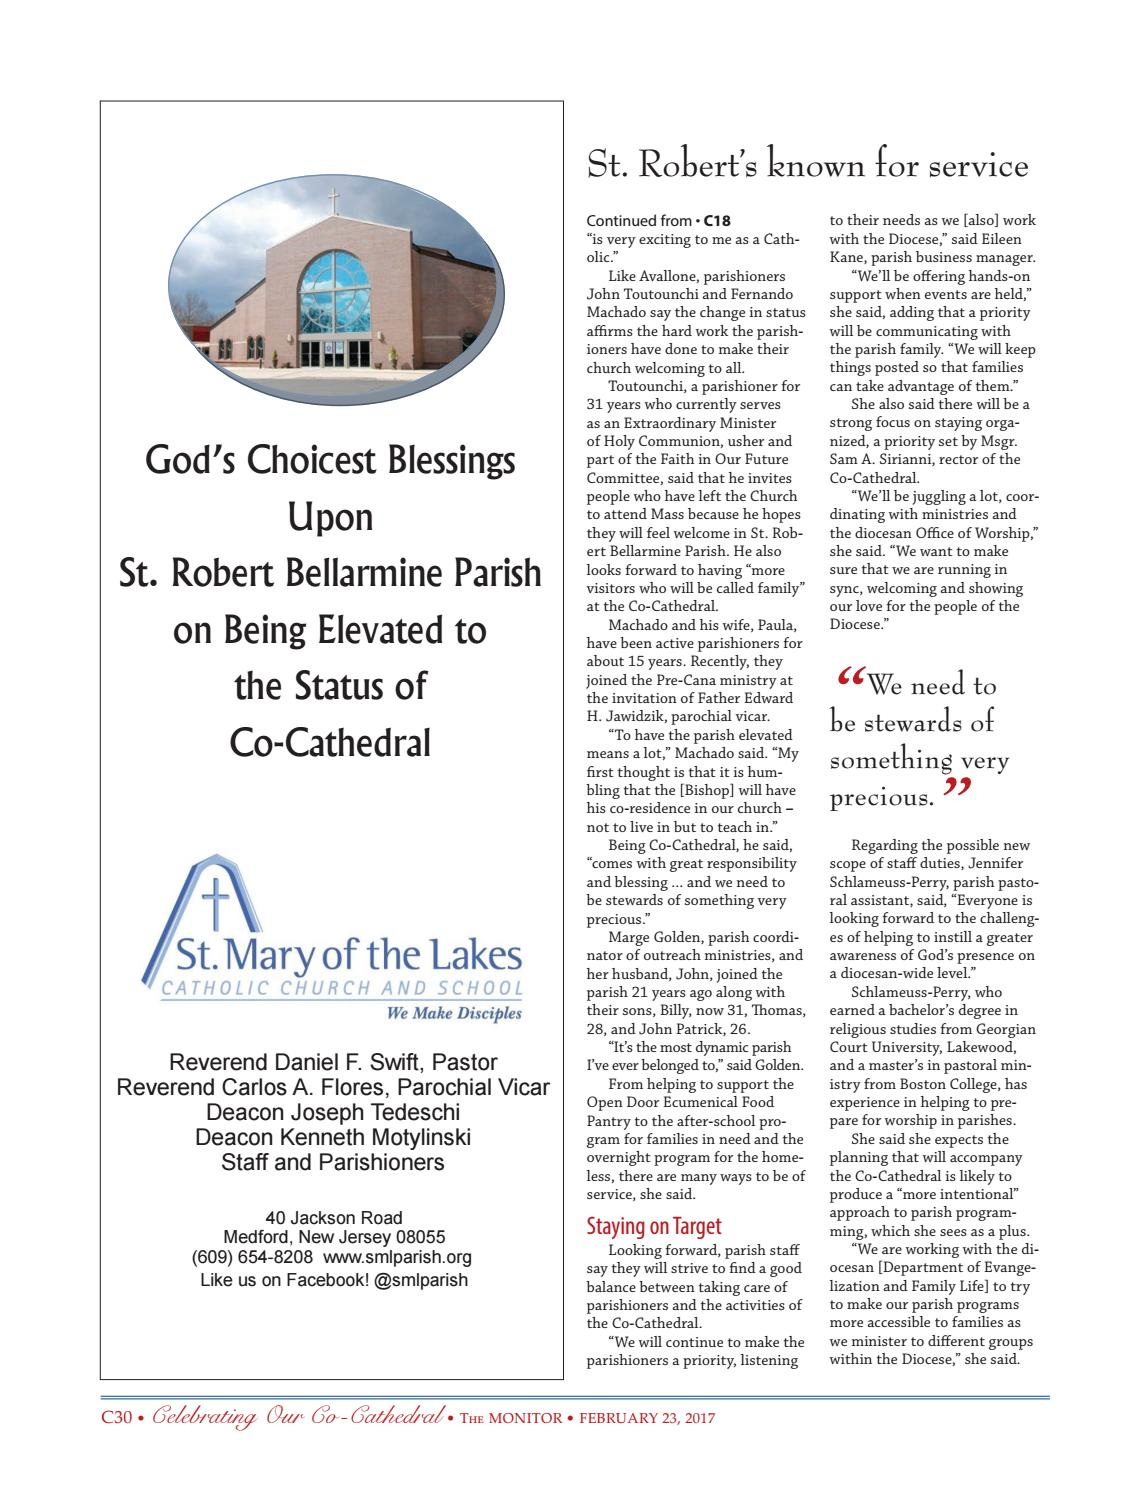 Celebrating Our Co-Cathedral Monitor Special Supplement by